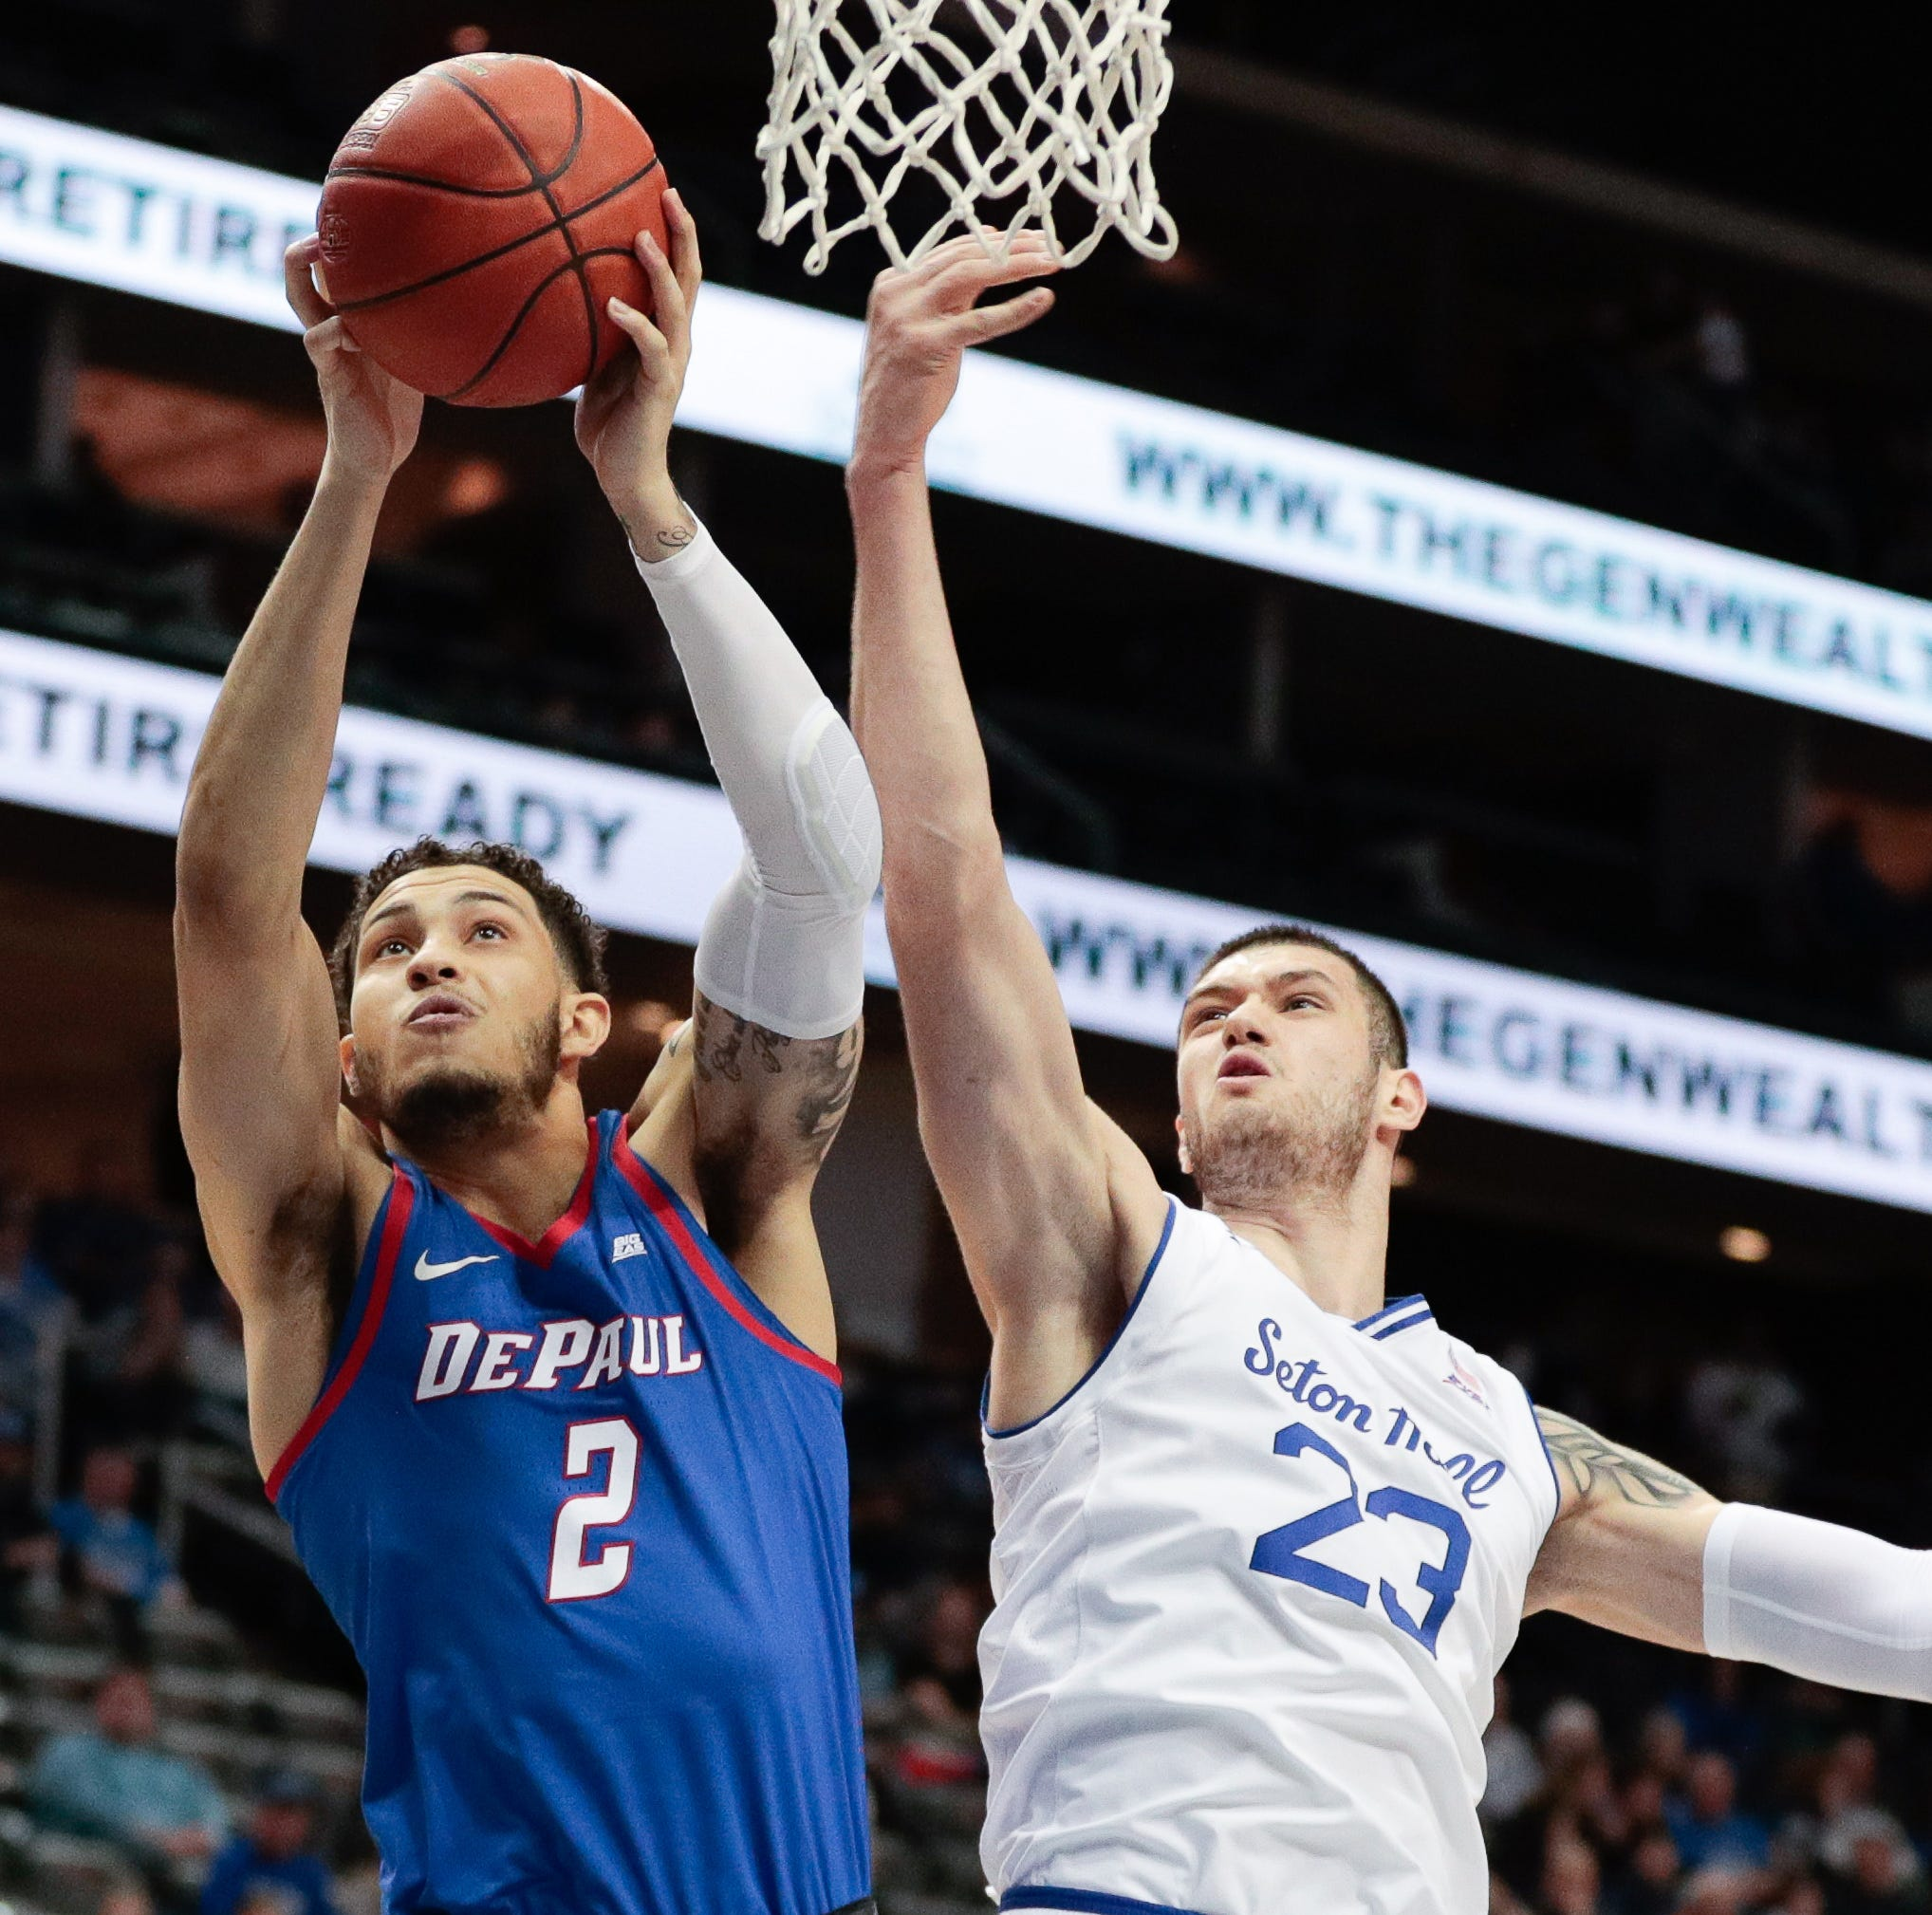 Seton Hall basketball clobbered on the glass, swept by DePaul